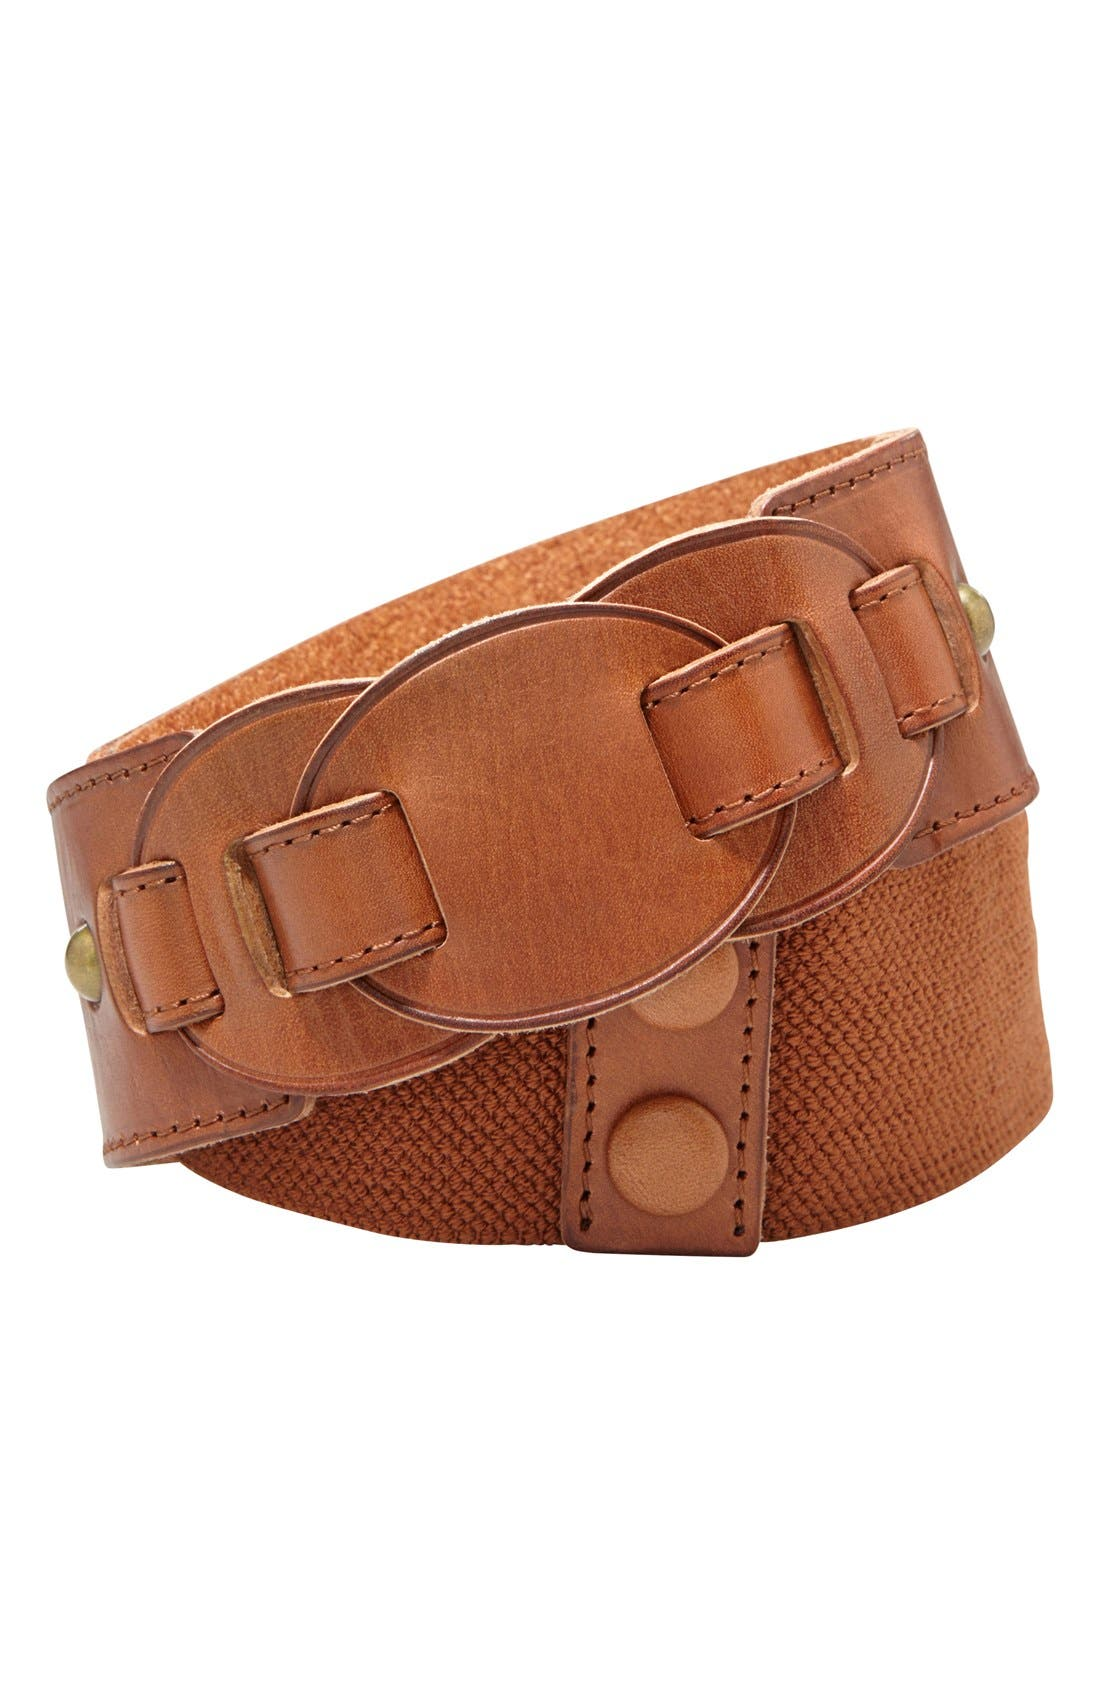 Alternate Image 1 Selected - Fossil Stretch Leather Belt